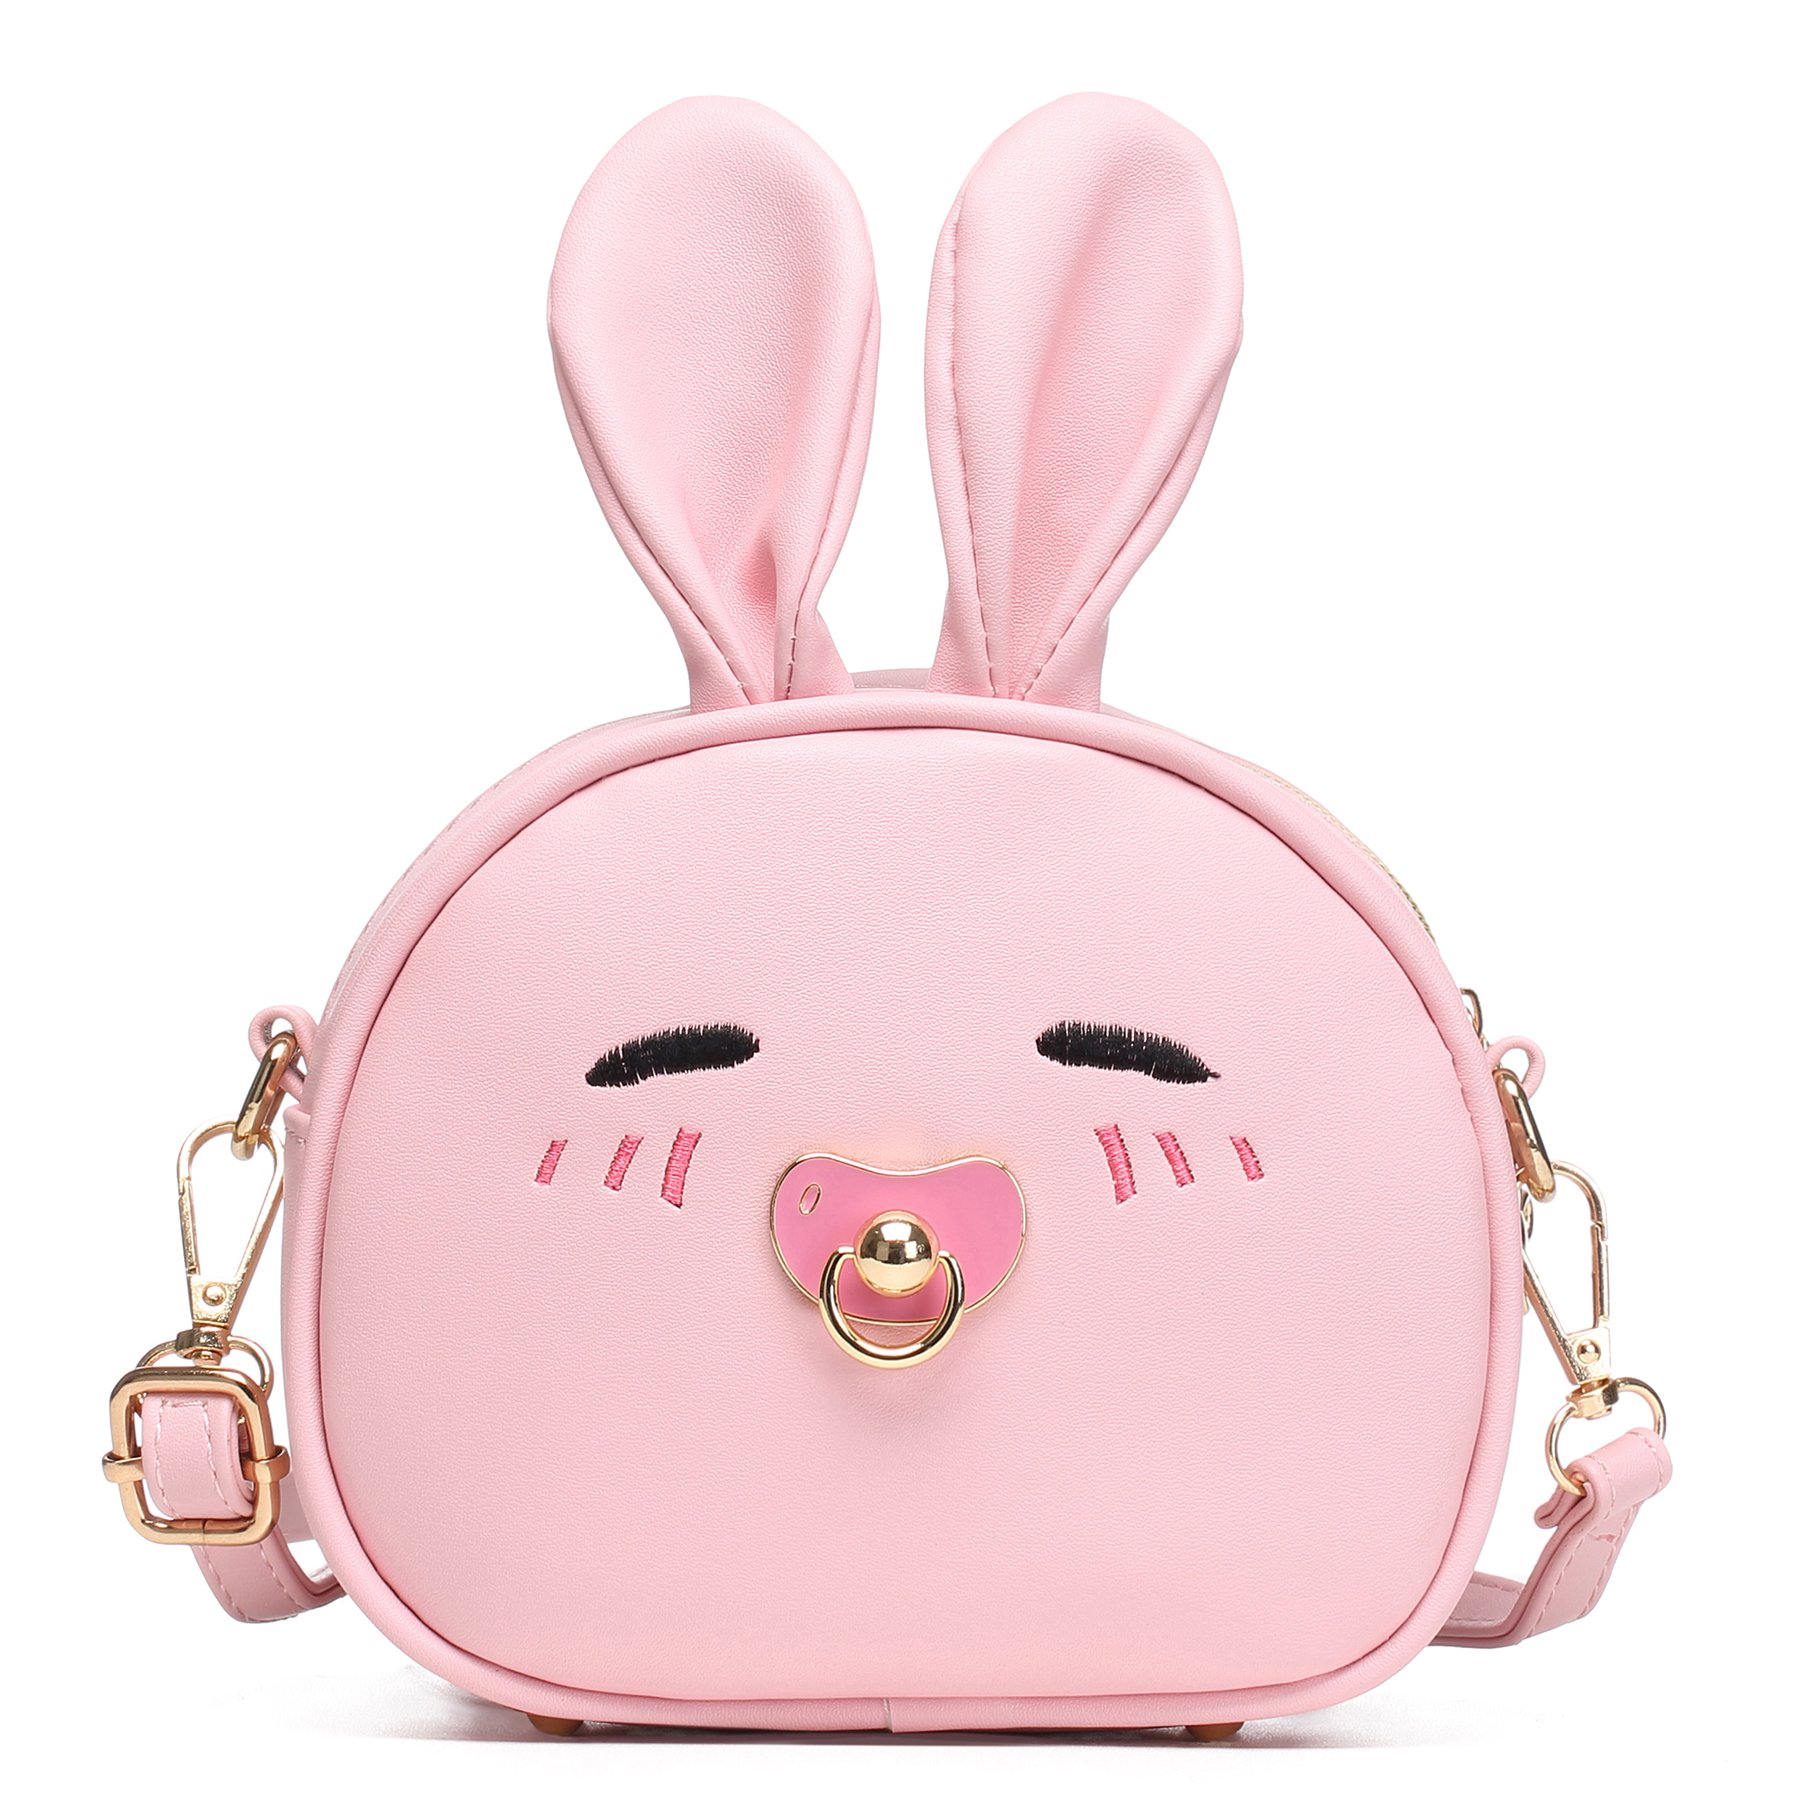 CMK Trendy Kids My First Purse for Toddler Kids Girls Cute Shoulder Bag Messenger Bags with Bunny Ear Novelty Birthday Gift (82011_Pink)